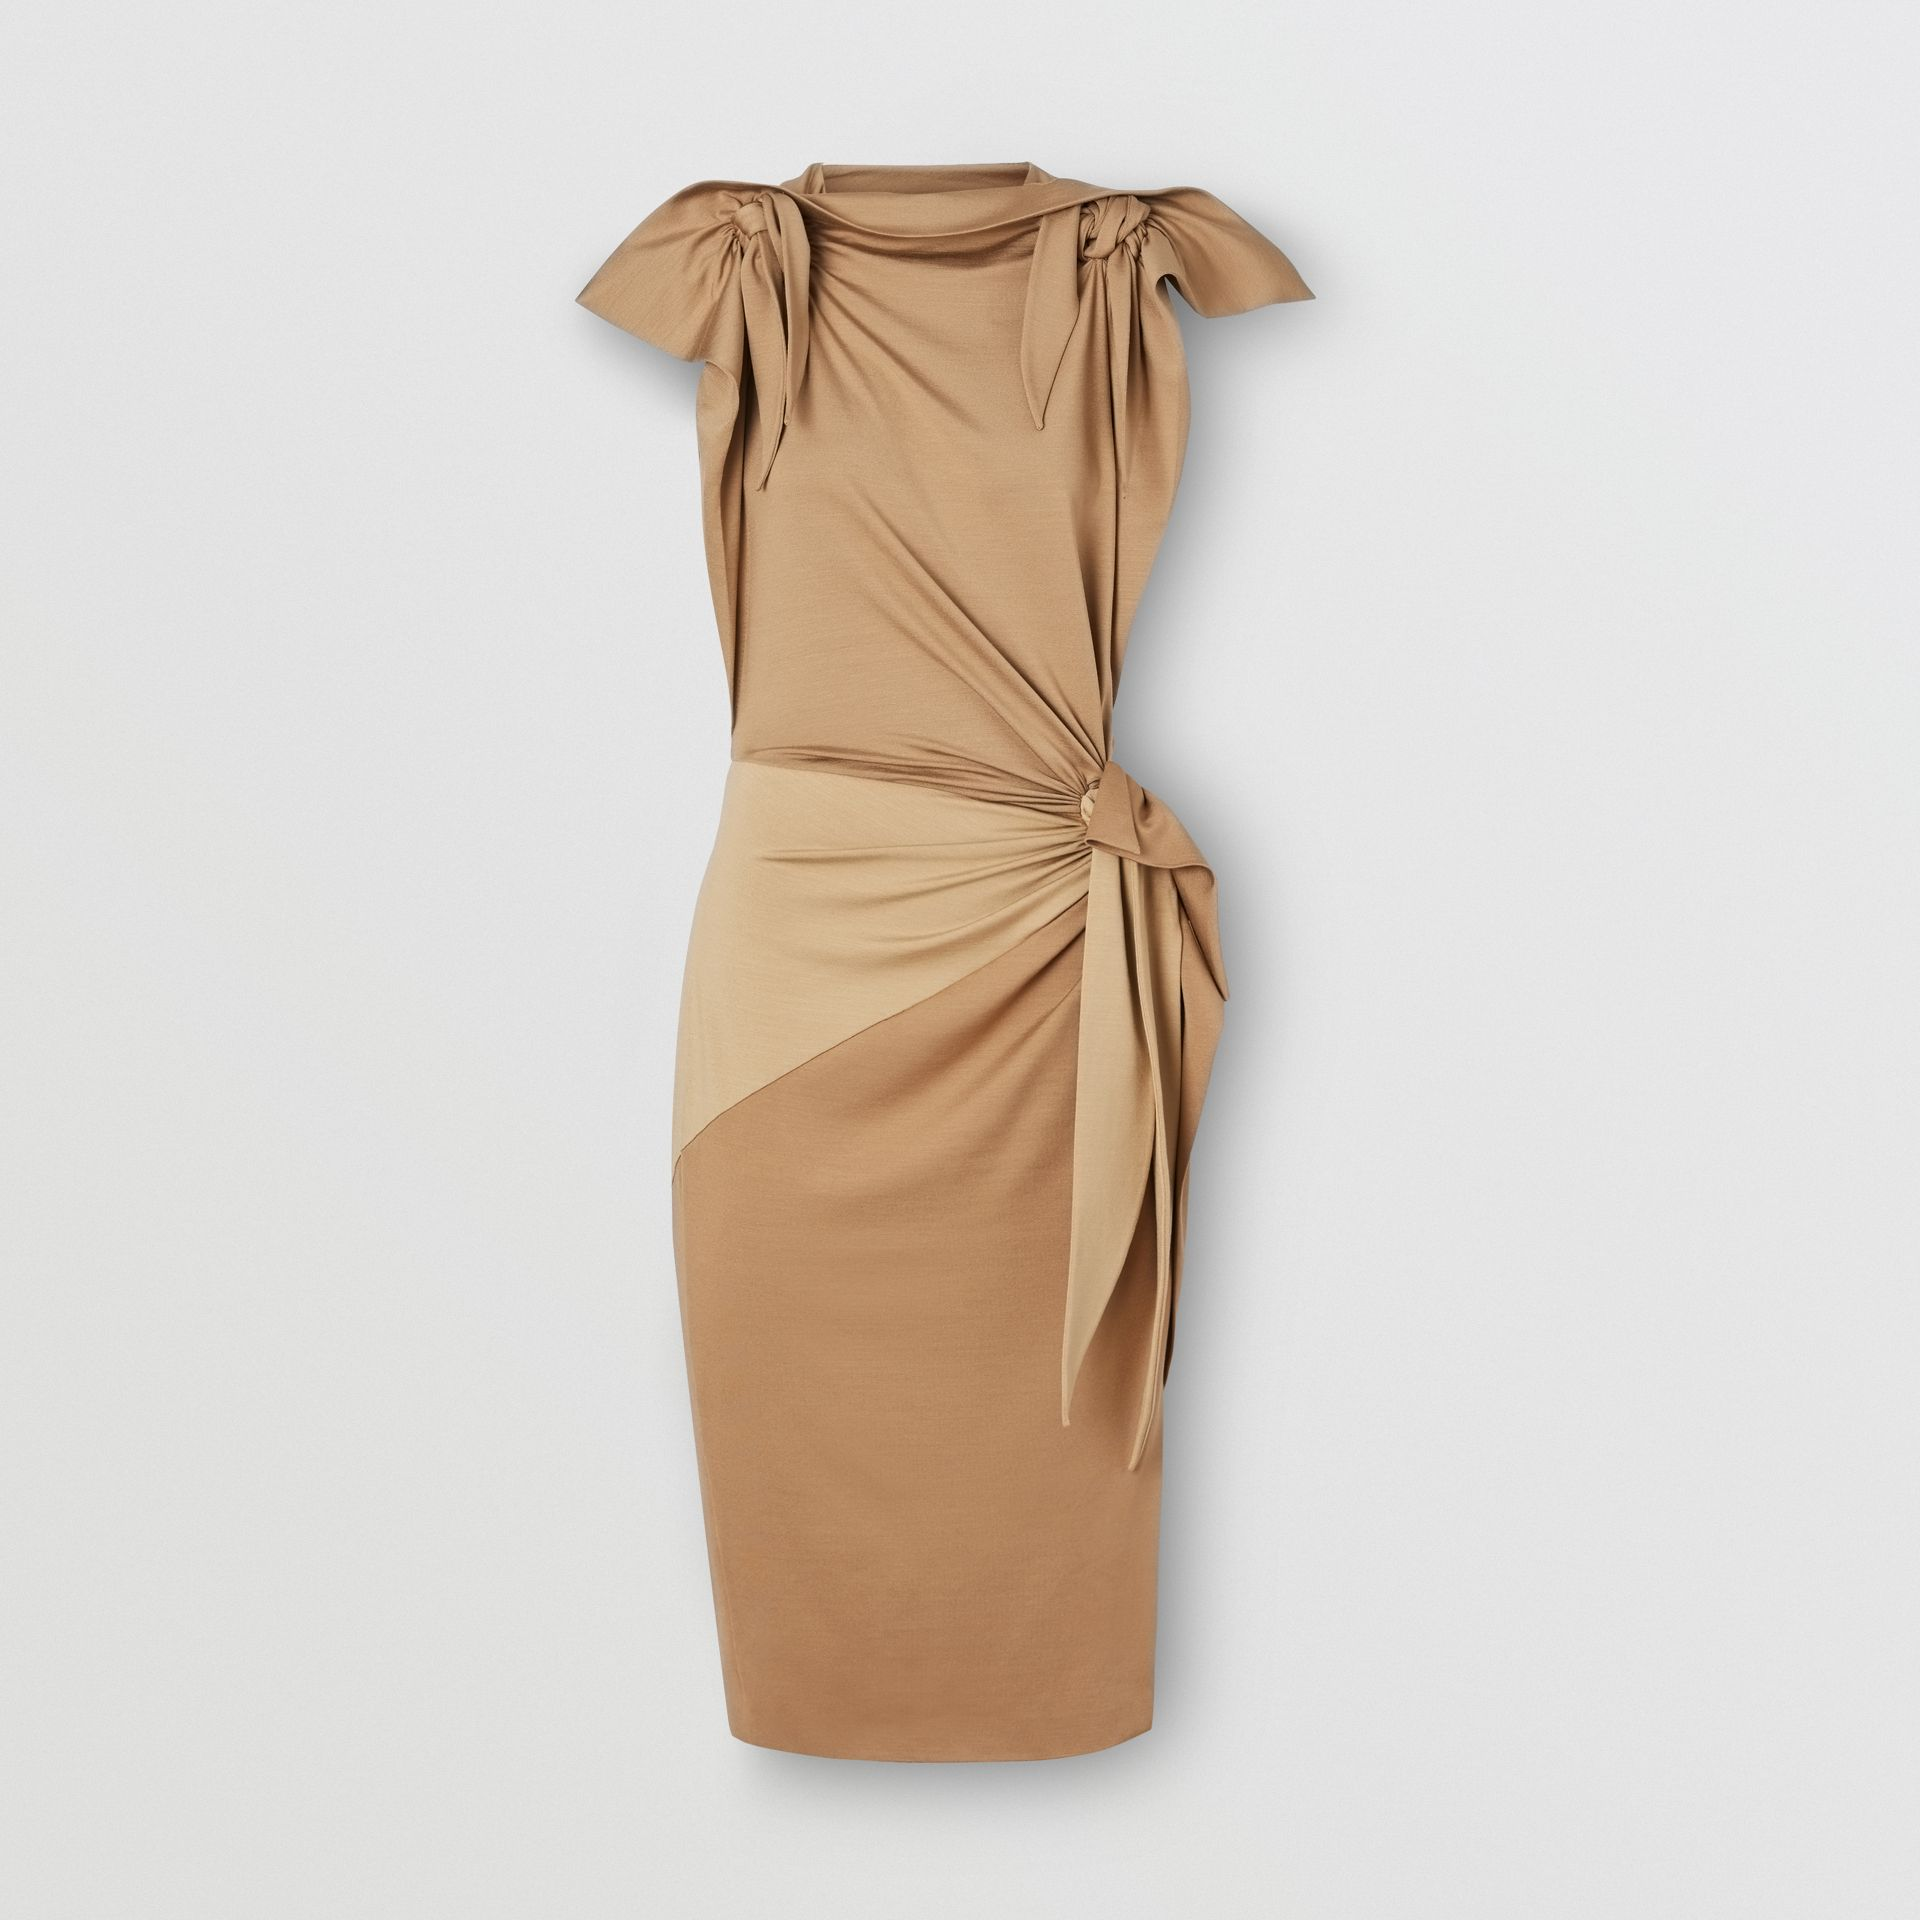 Tie Detail Tri-tone Silk Jersey Dress in Wheat - Women | Burberry United Kingdom - gallery image 3